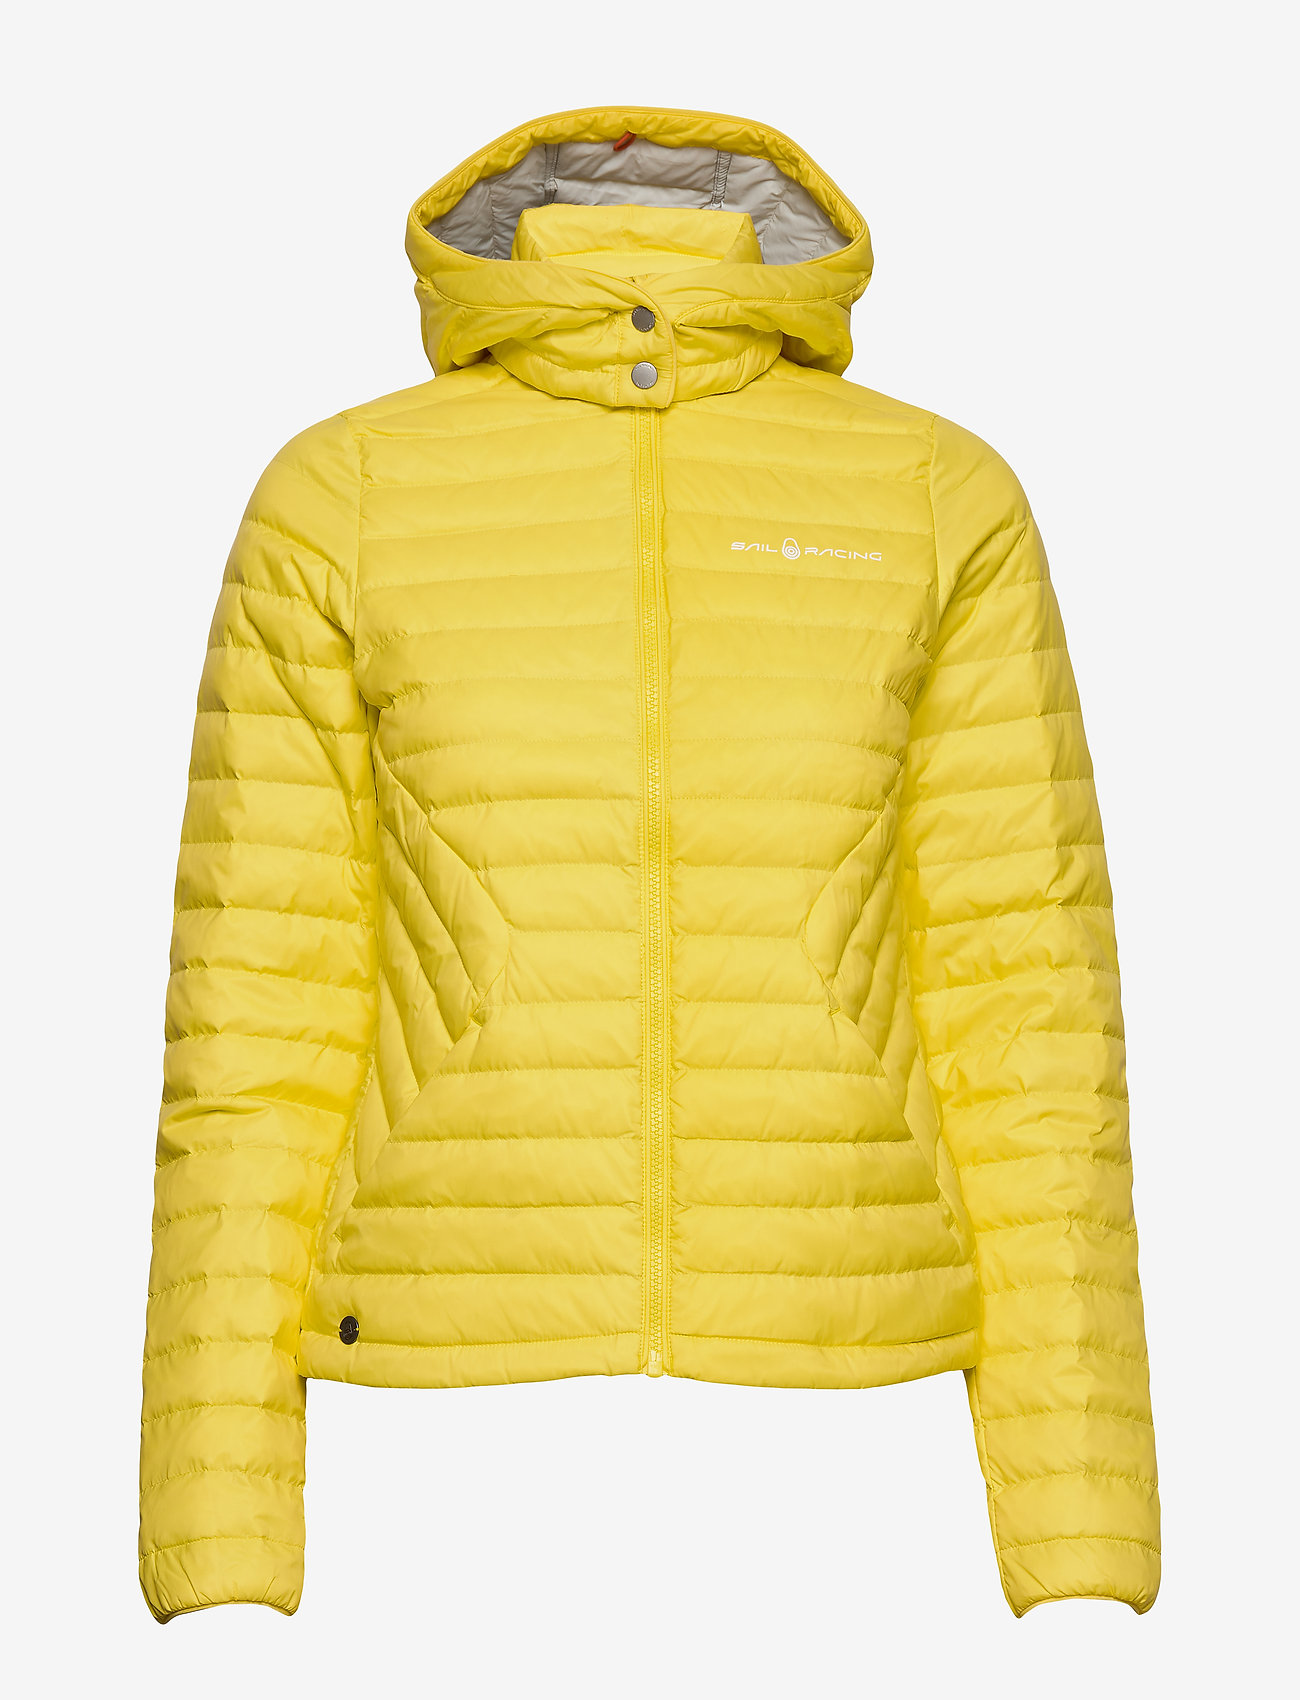 Sail Racing - W LINK DOWN JACKET - sports jackets - light yellow - 1